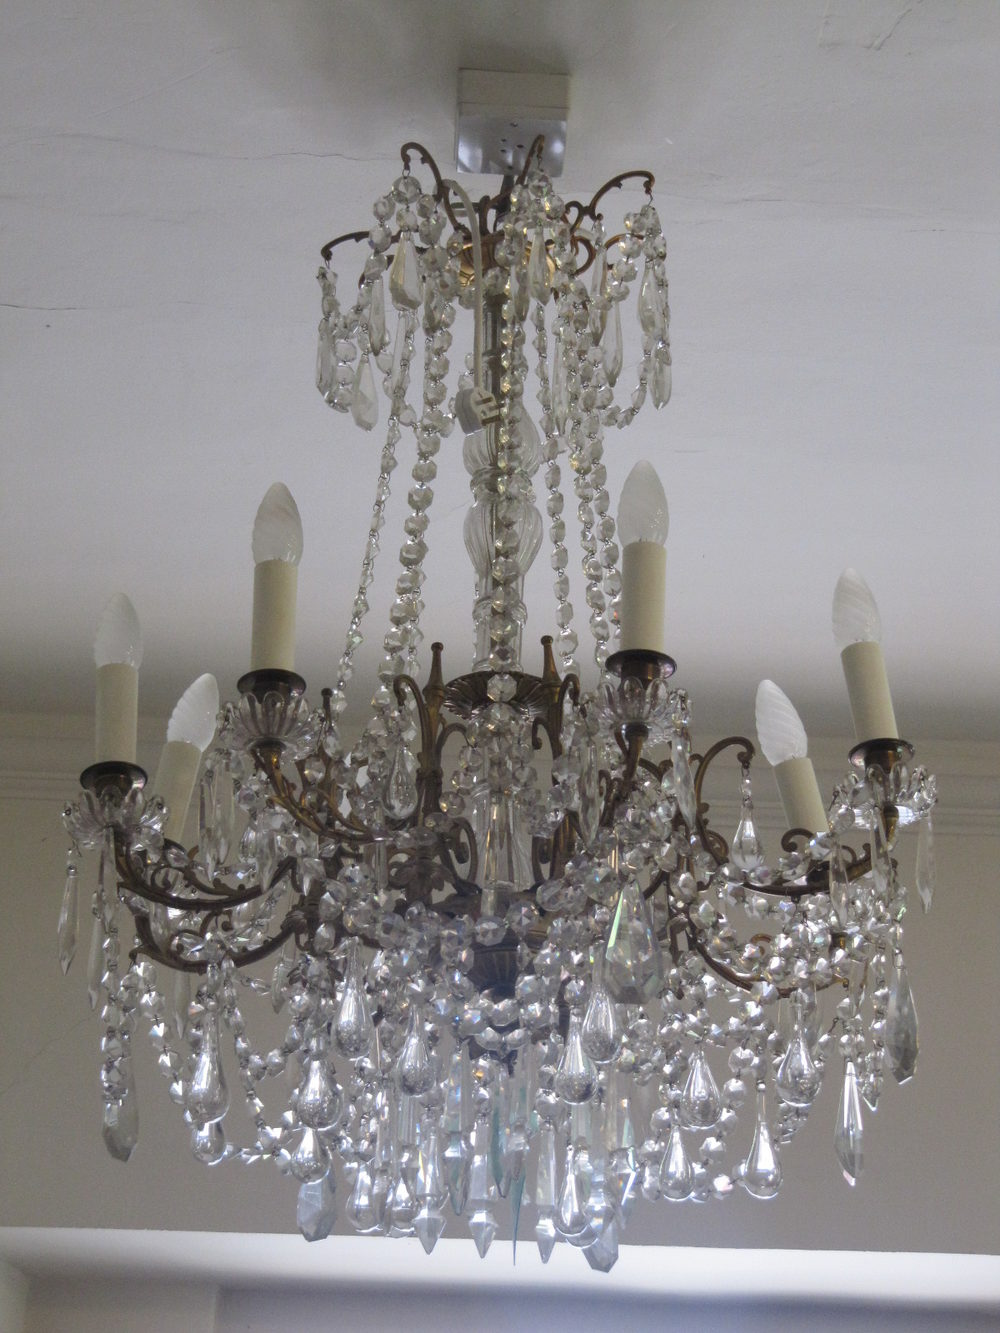 lighting antique arm recent refno acquisitions six ceiling chandelier and french chandeliers